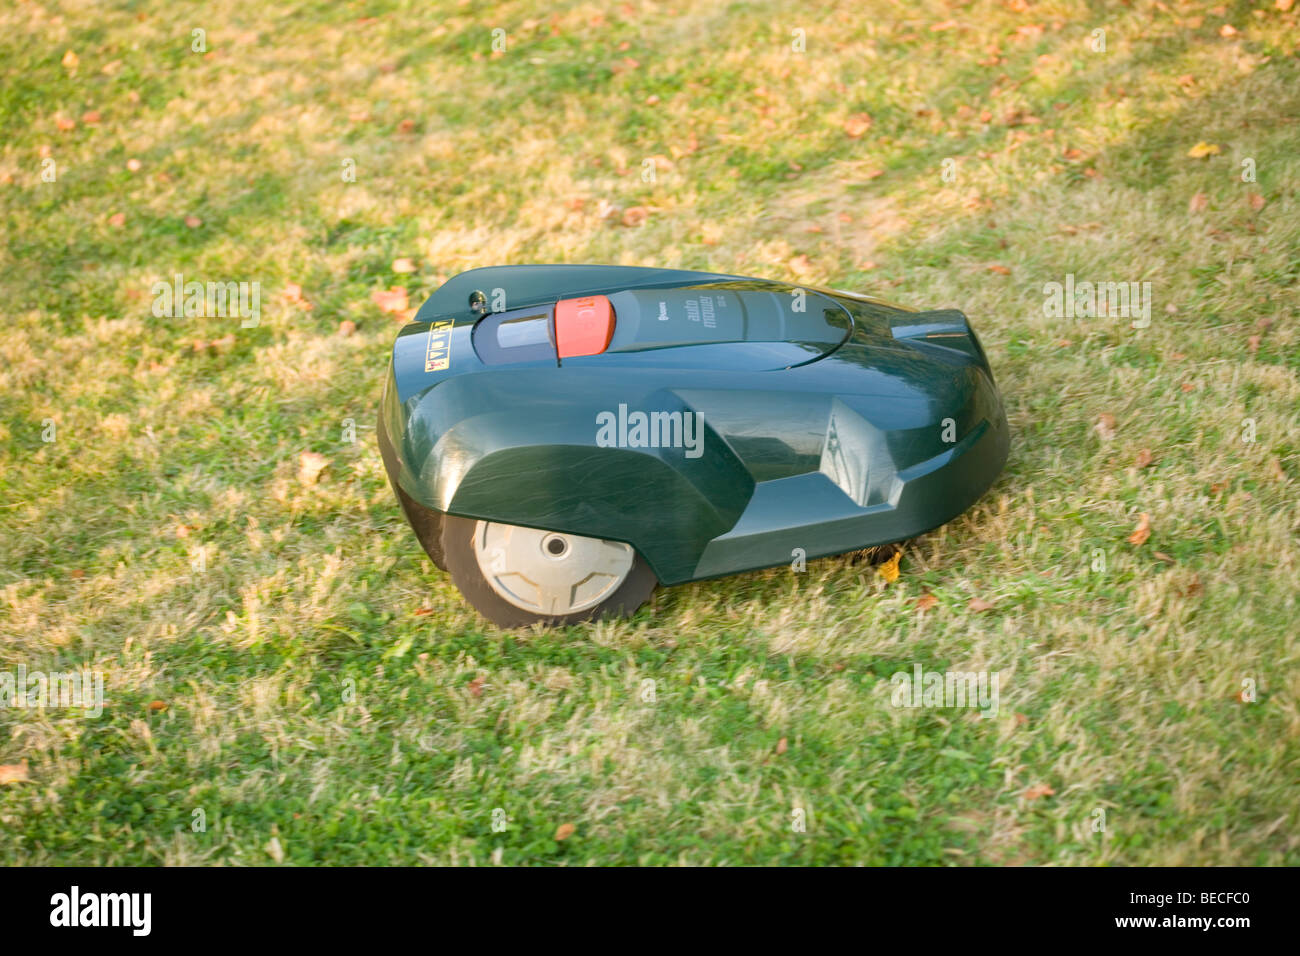 Automatic robot lawn mower cutting grass - Stock Image